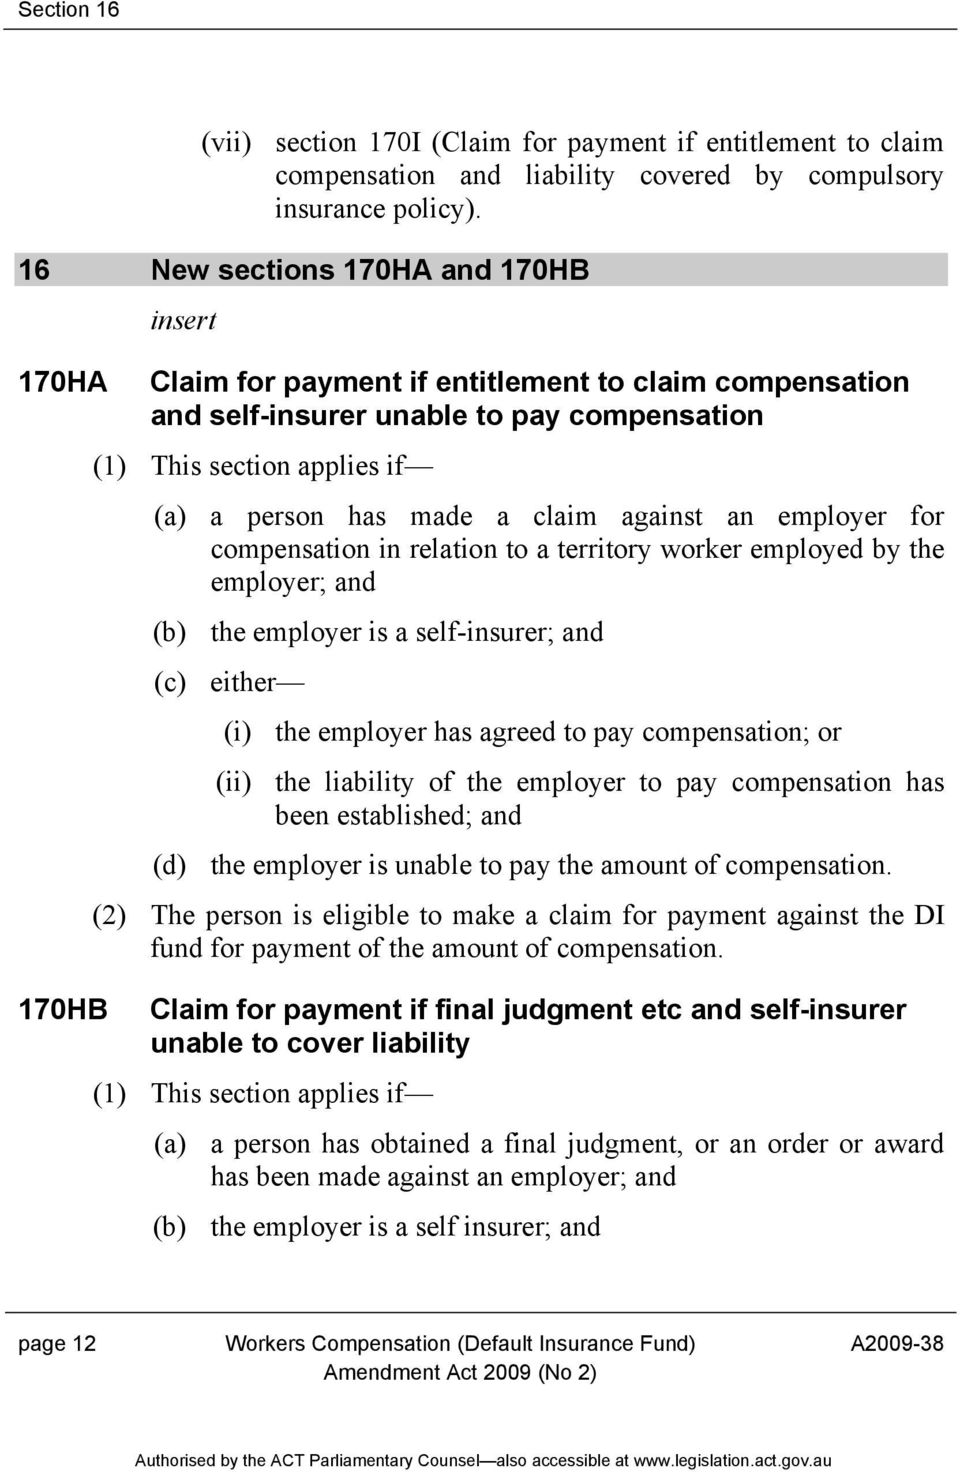 claim against an employer for compensation in relation to a territory worker employed by the employer; and (b) the employer is a self-insurer; and (c) either (i) the employer has agreed to pay